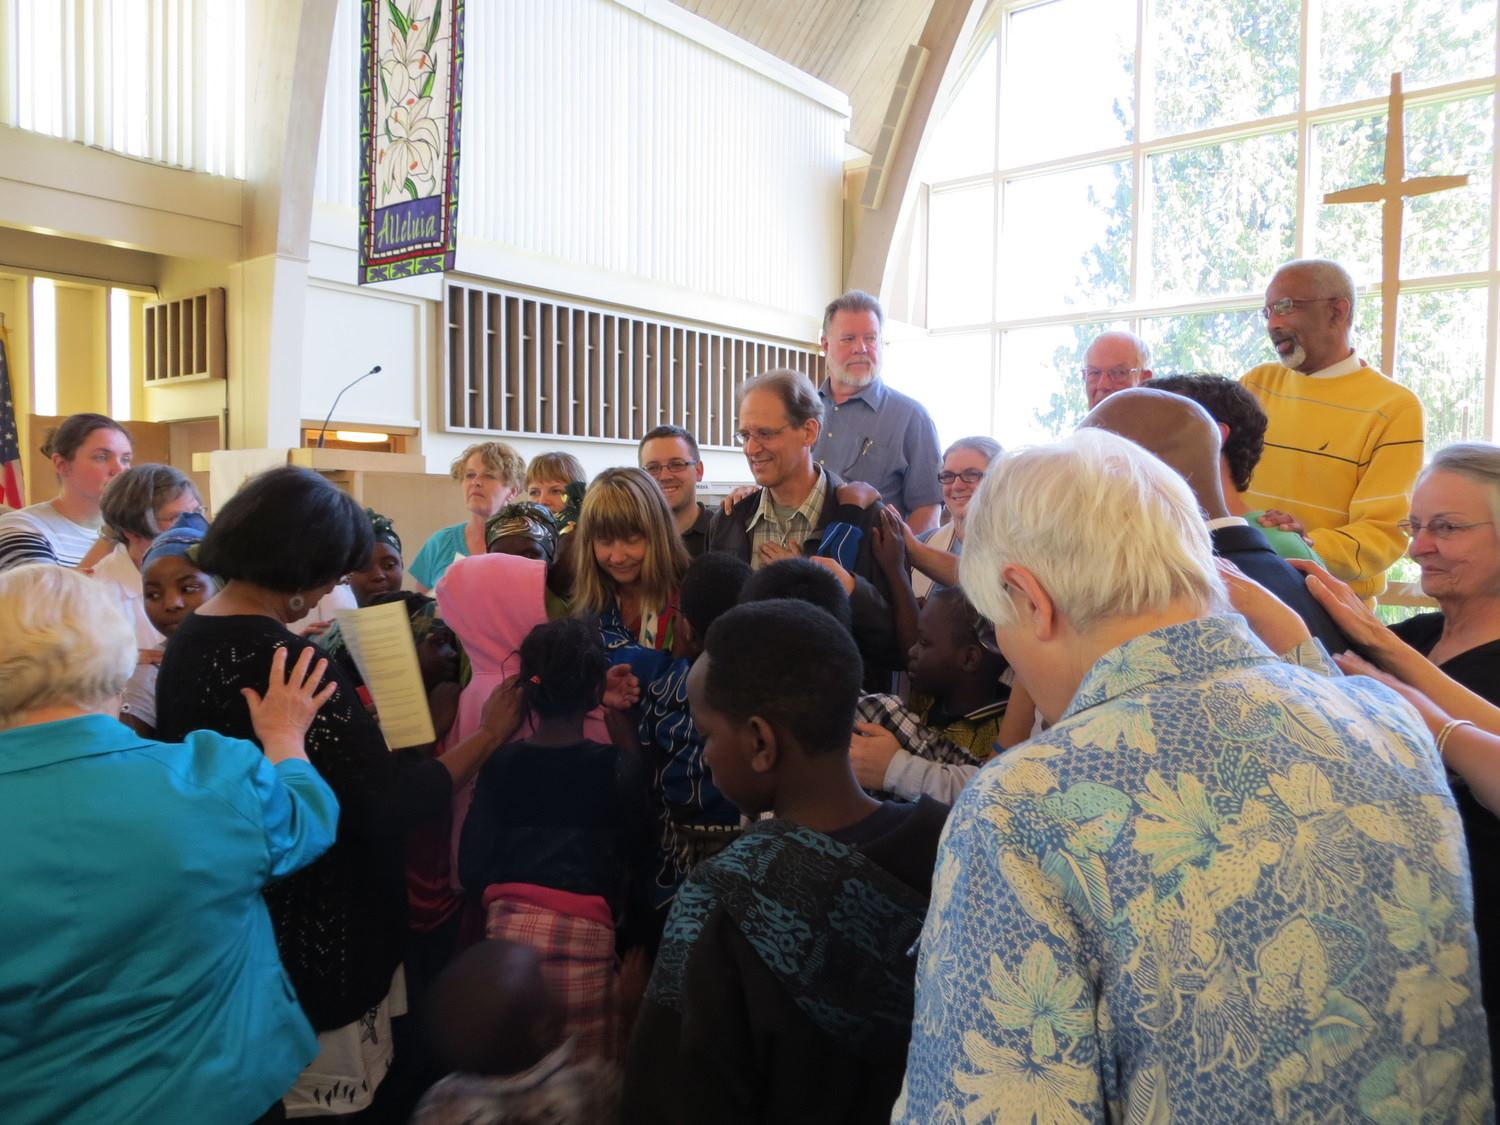 Rainier Beach Presbyterian Church - 4